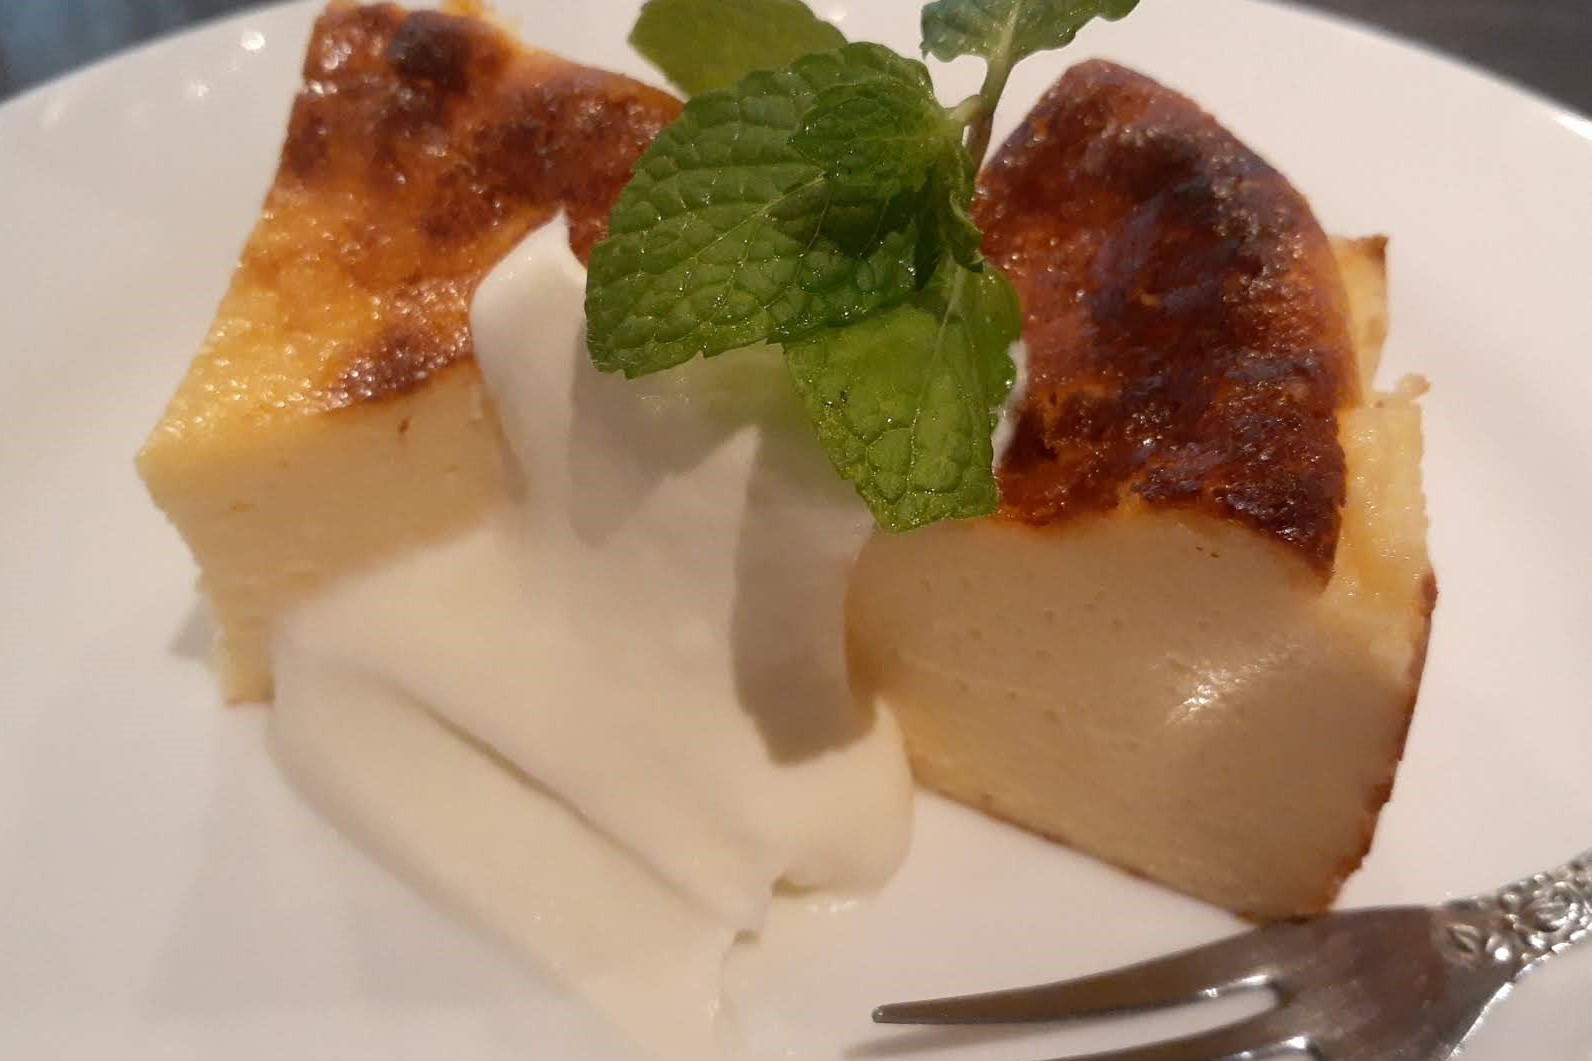 File Nagoya Bar Basque Cheese Cake 2020 06 Ac 3 Jpg Wikimedia Commons